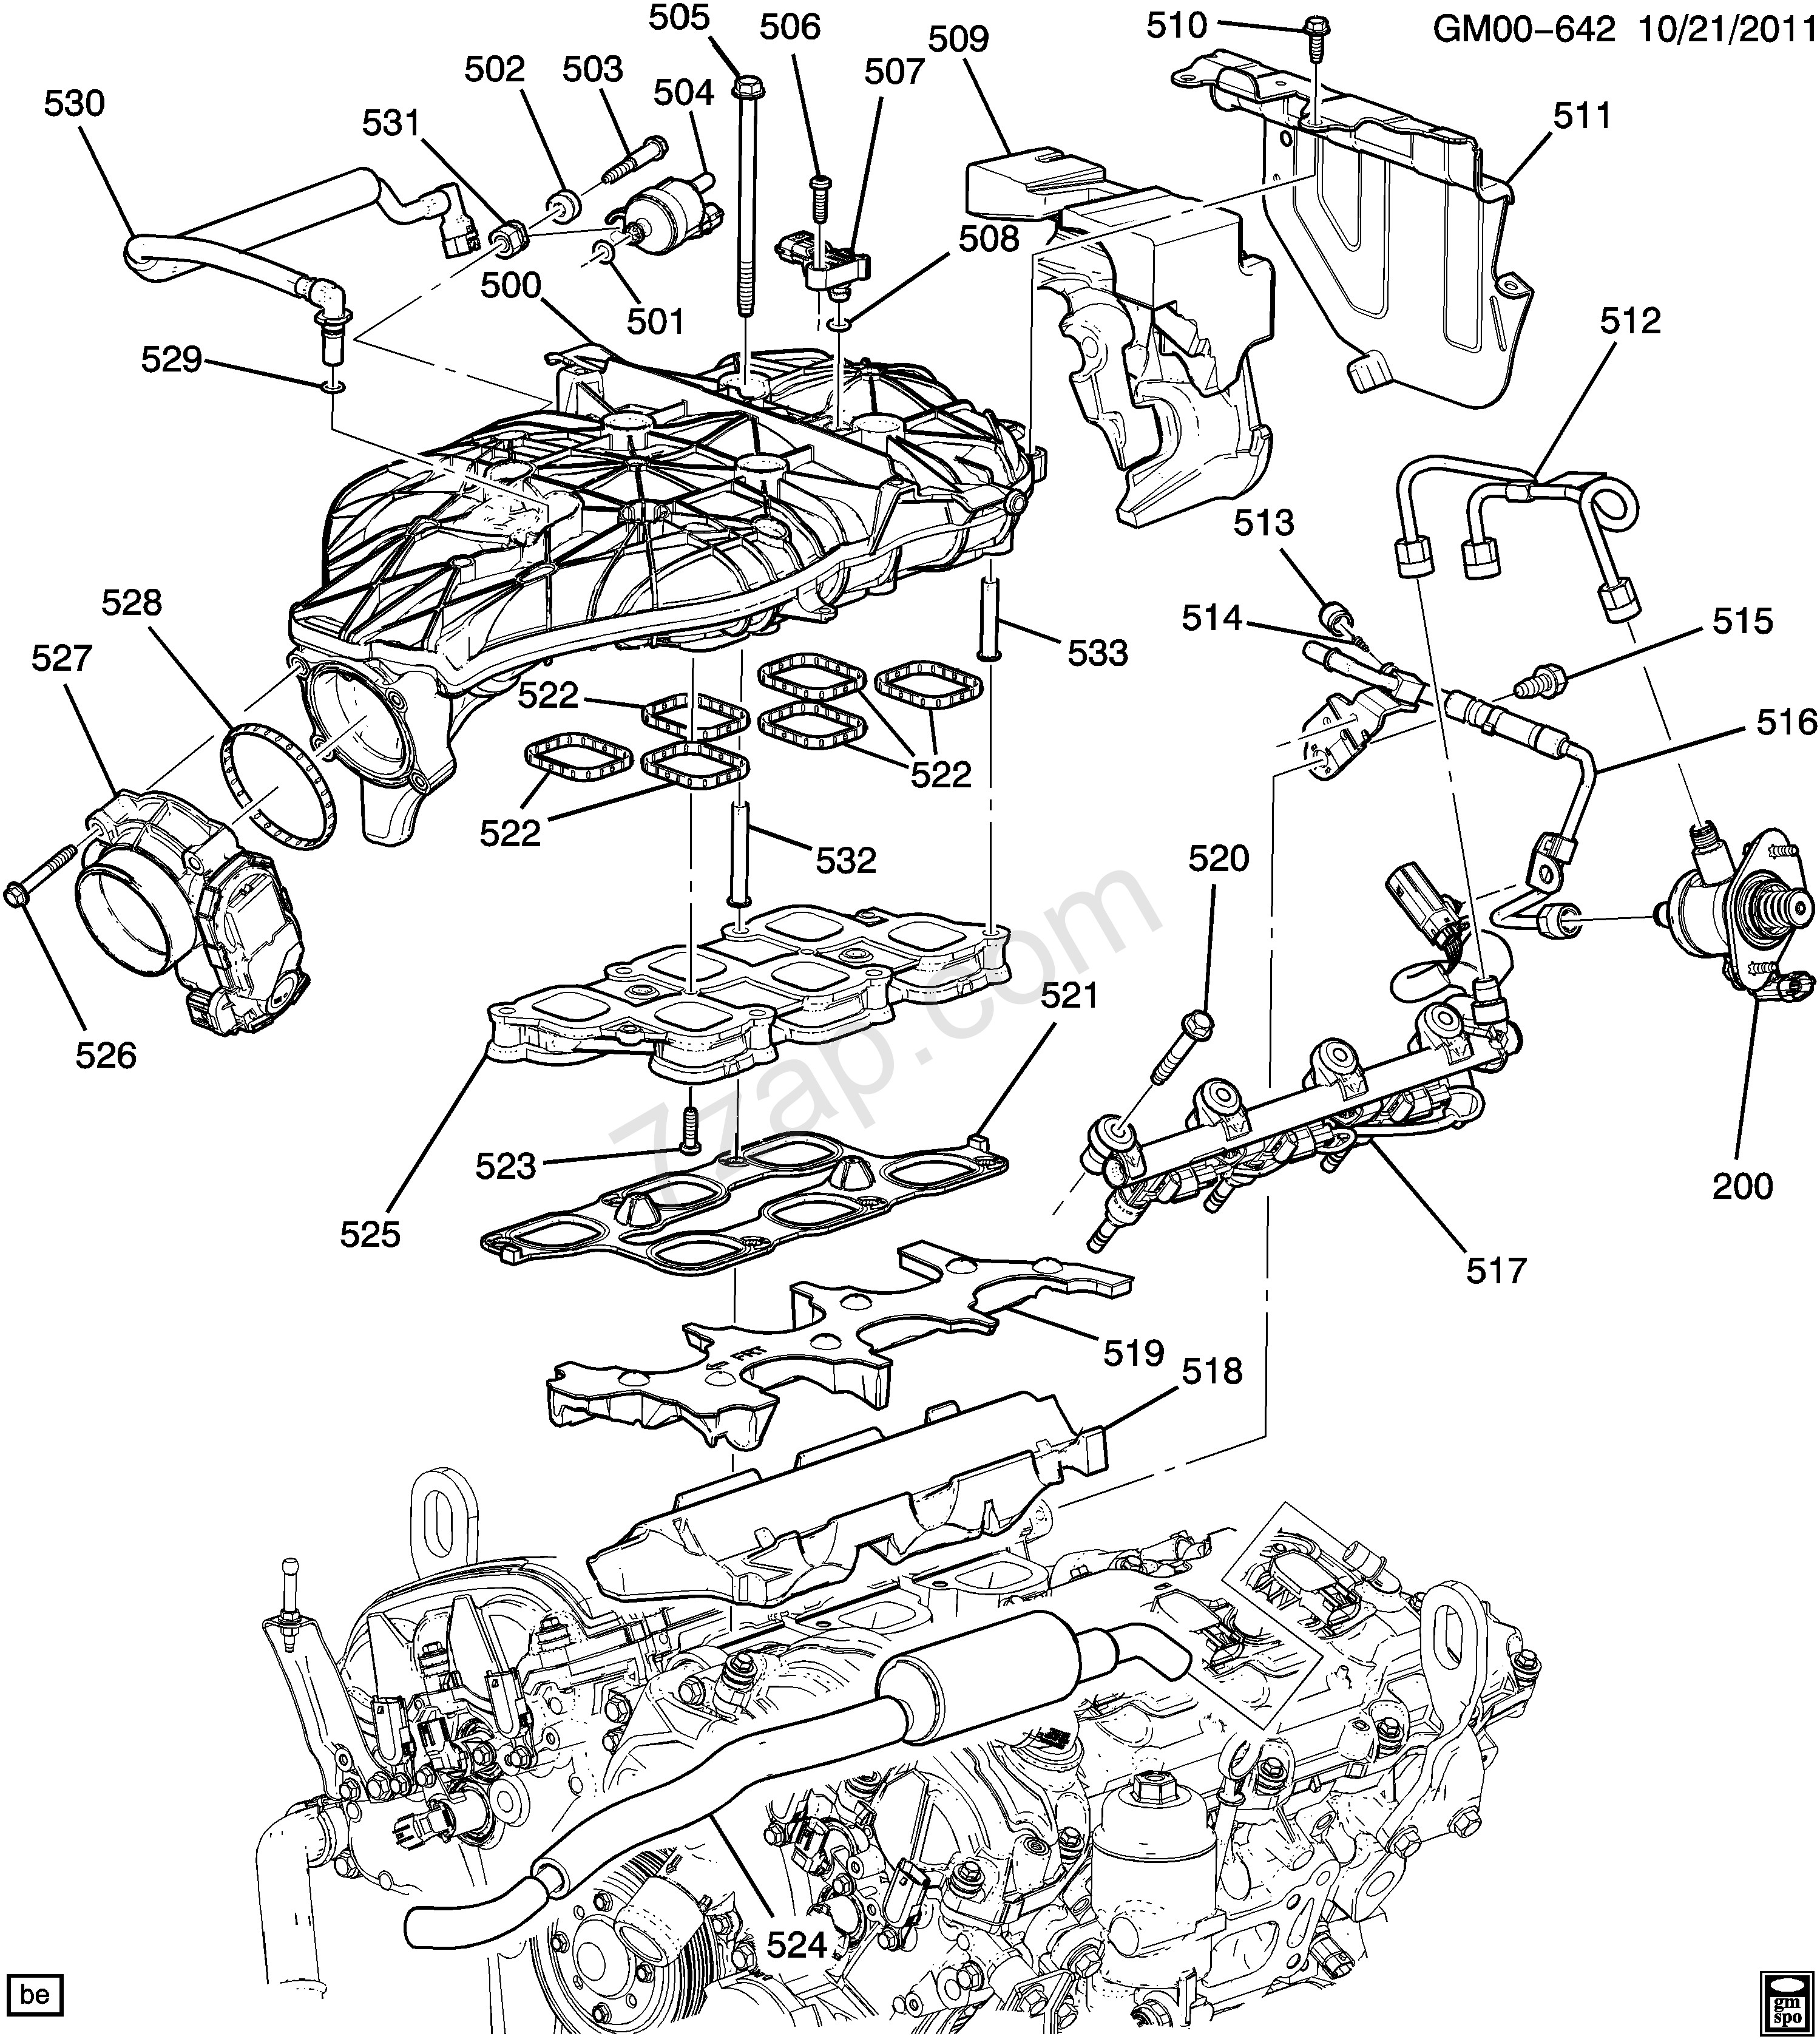 General Motors Parts Diagrams